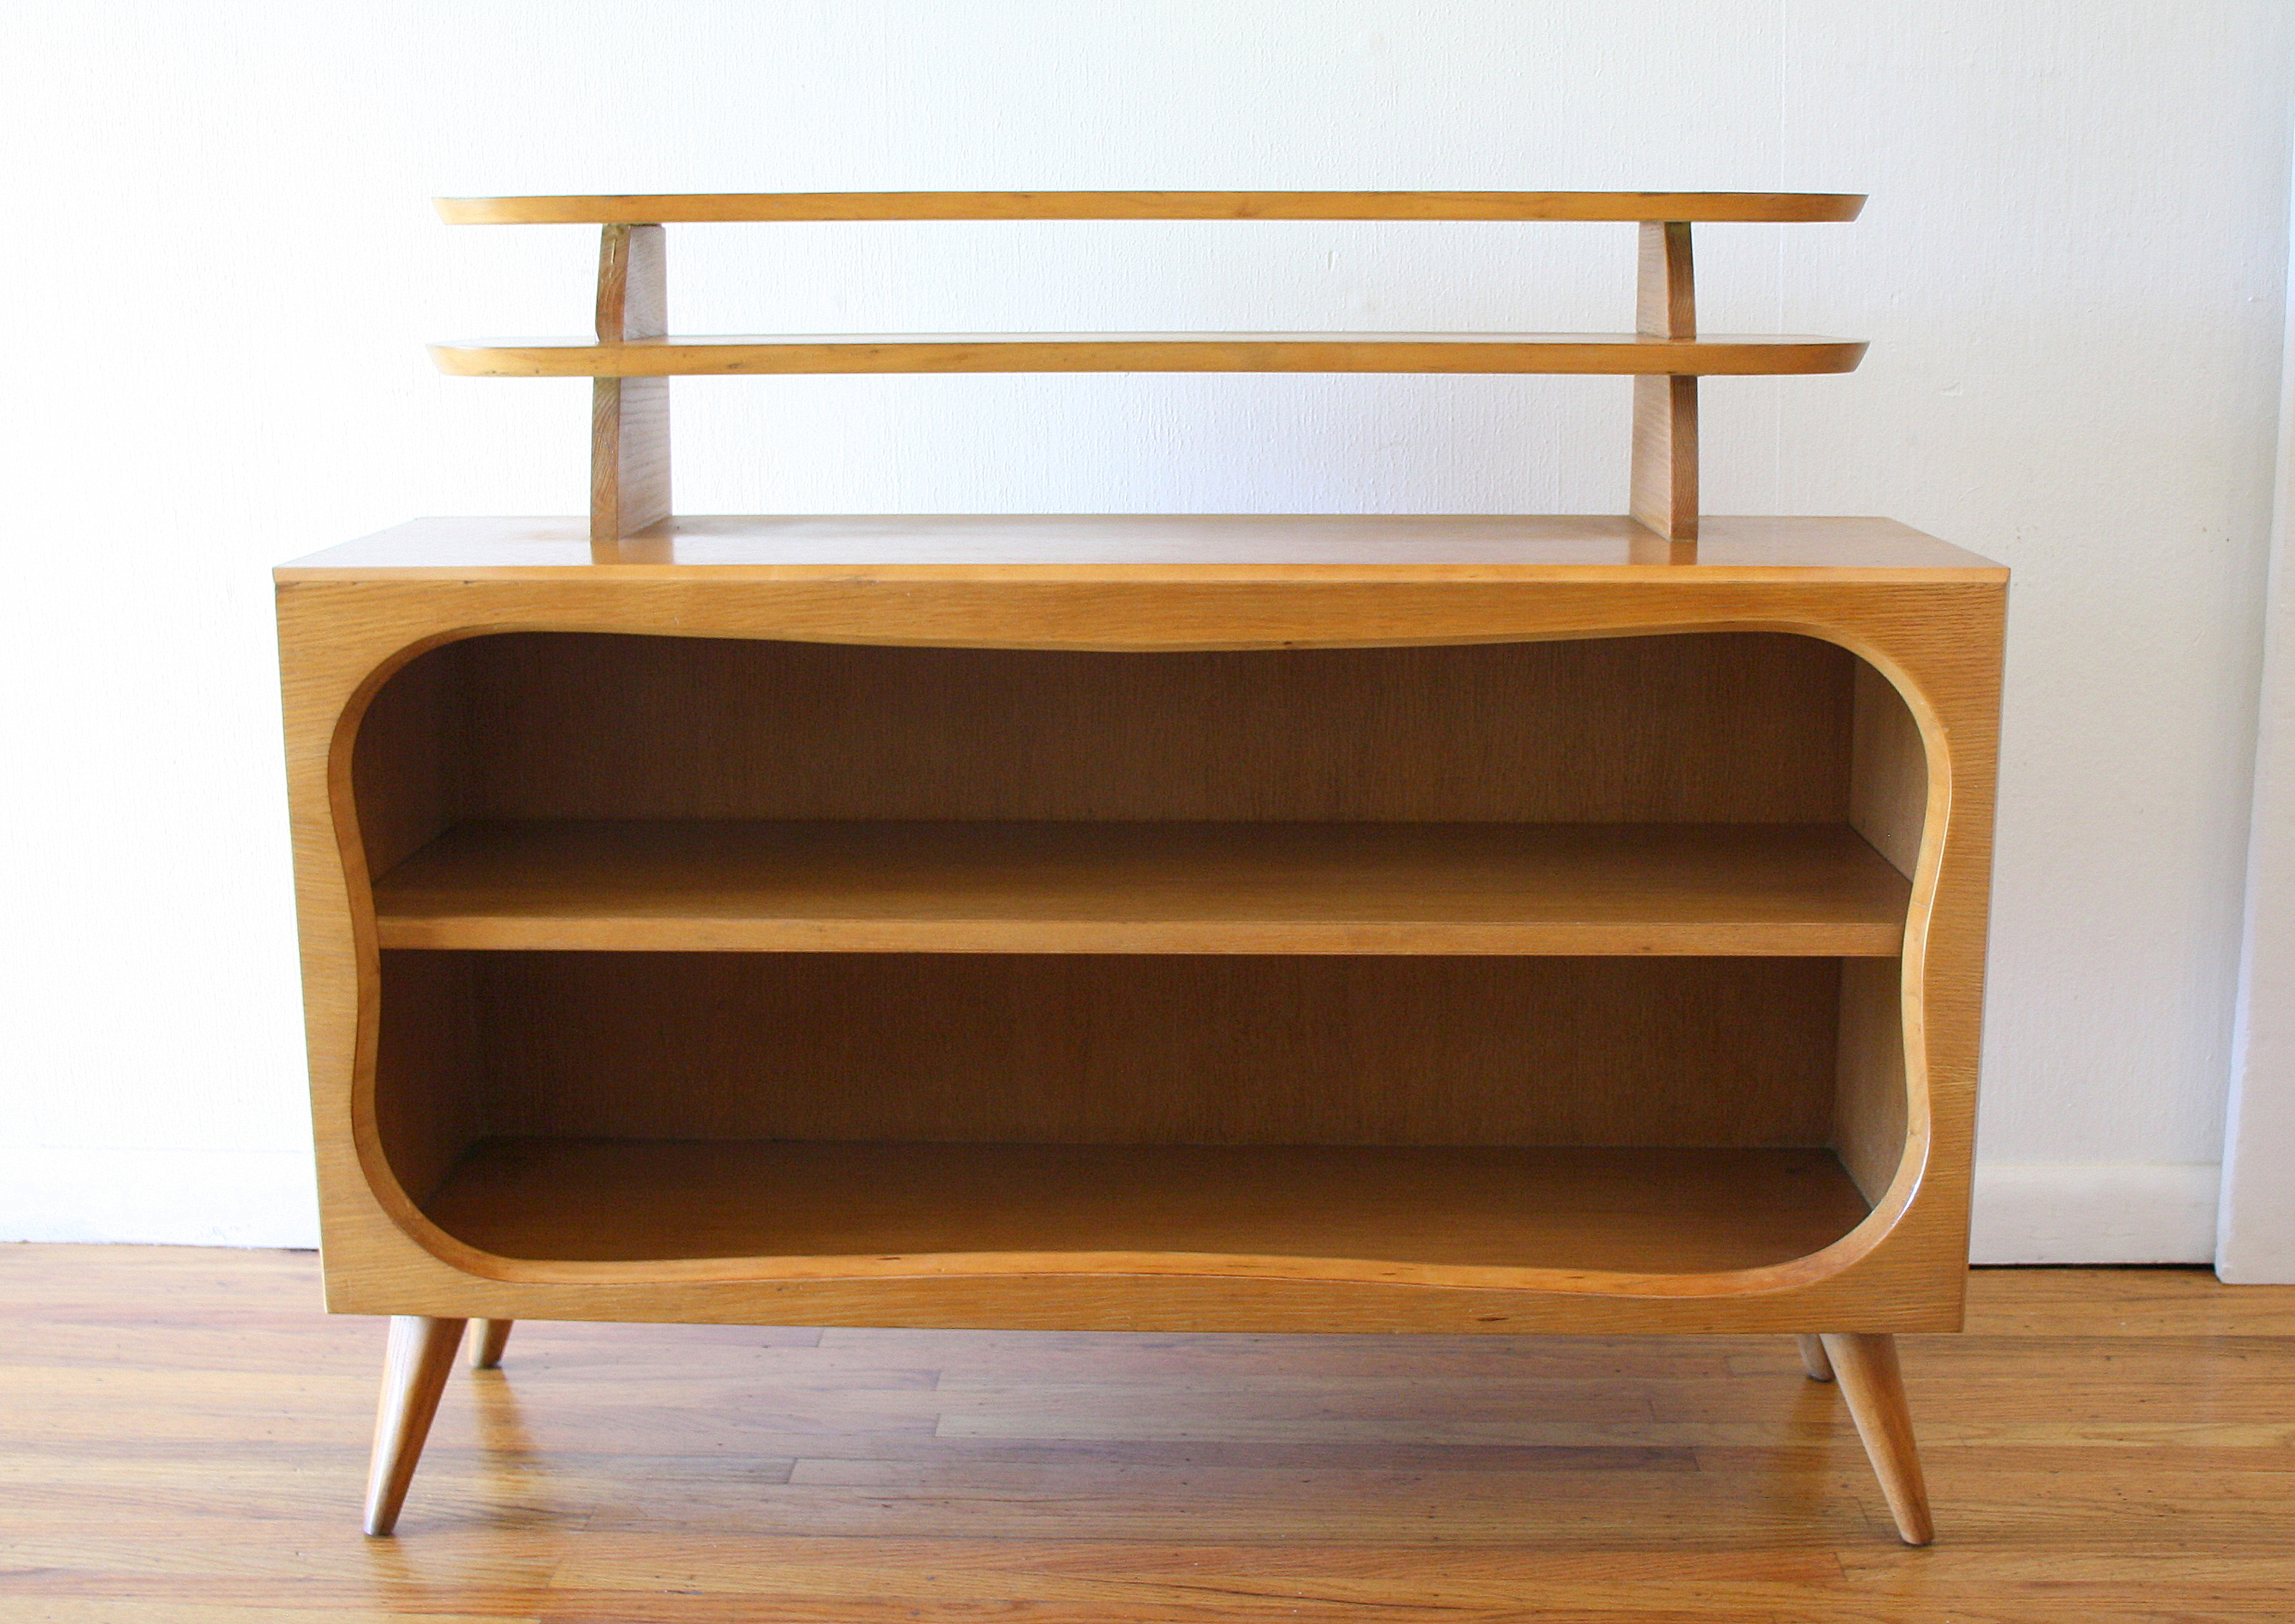 Mcm shelving unit with splayed legs 1